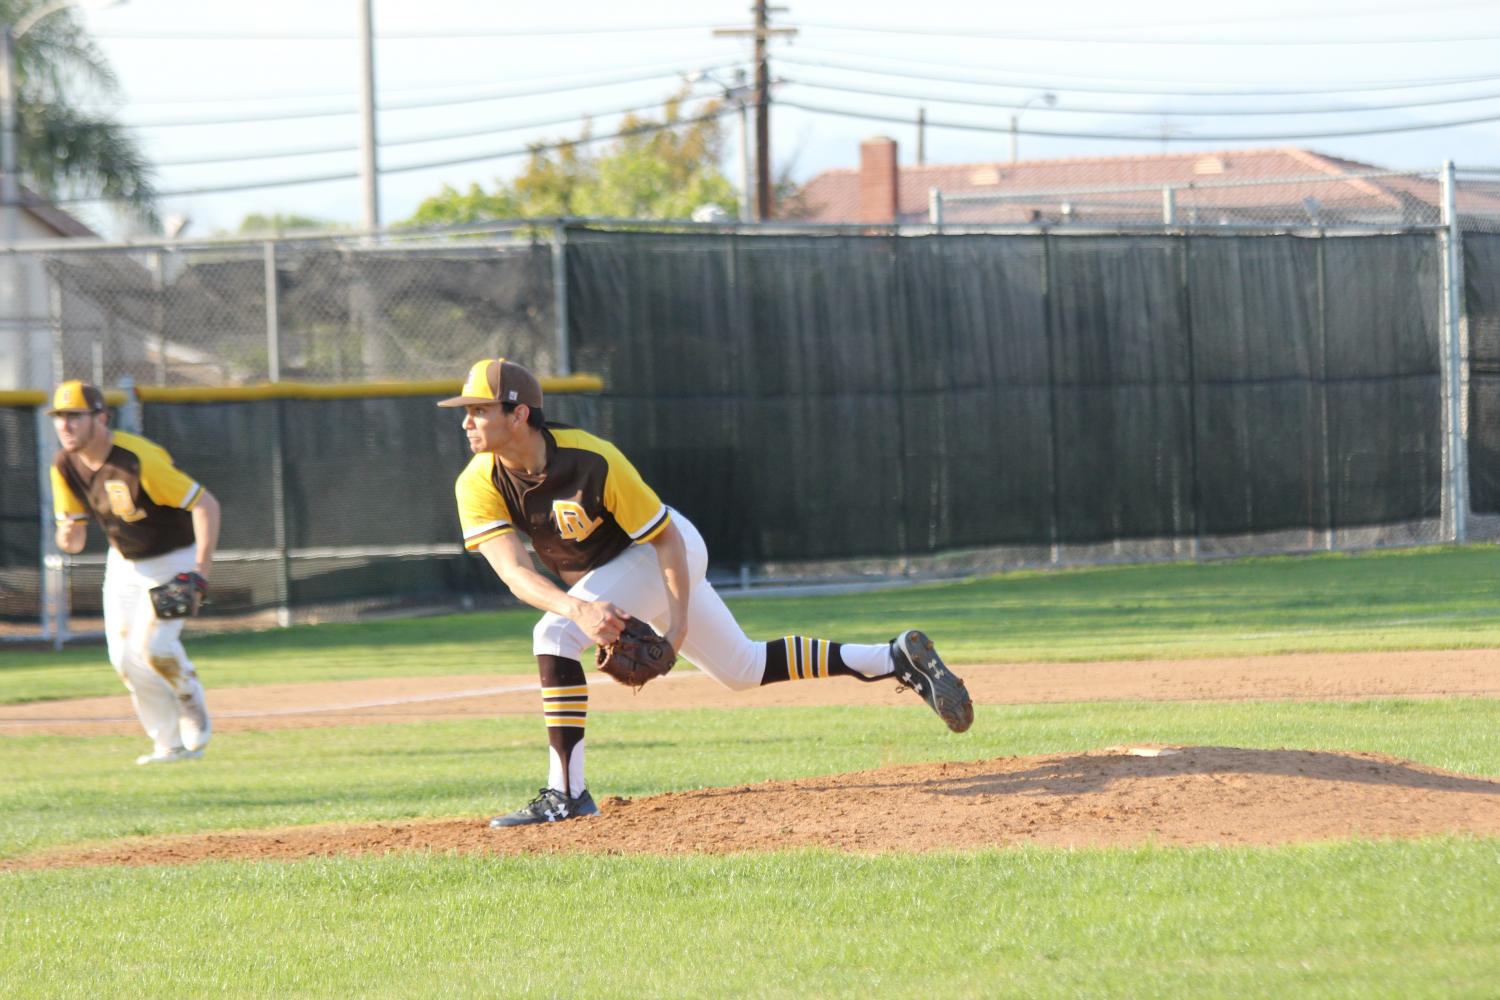 Don+Lugo+very+own+Josh+Ibarra+makes+an+out+to+3rd+baseman+to+make+an+out+against+Cajon+High+School.+%22We+are+just+taking+it+one+game+at+a+time+now+-+explained+Nolan+Fernandez%22.+%28boy+on+the+left%29+Varsity+baseball+advances+to+second+round+CIF+versus+Santa+Fe+high+school.